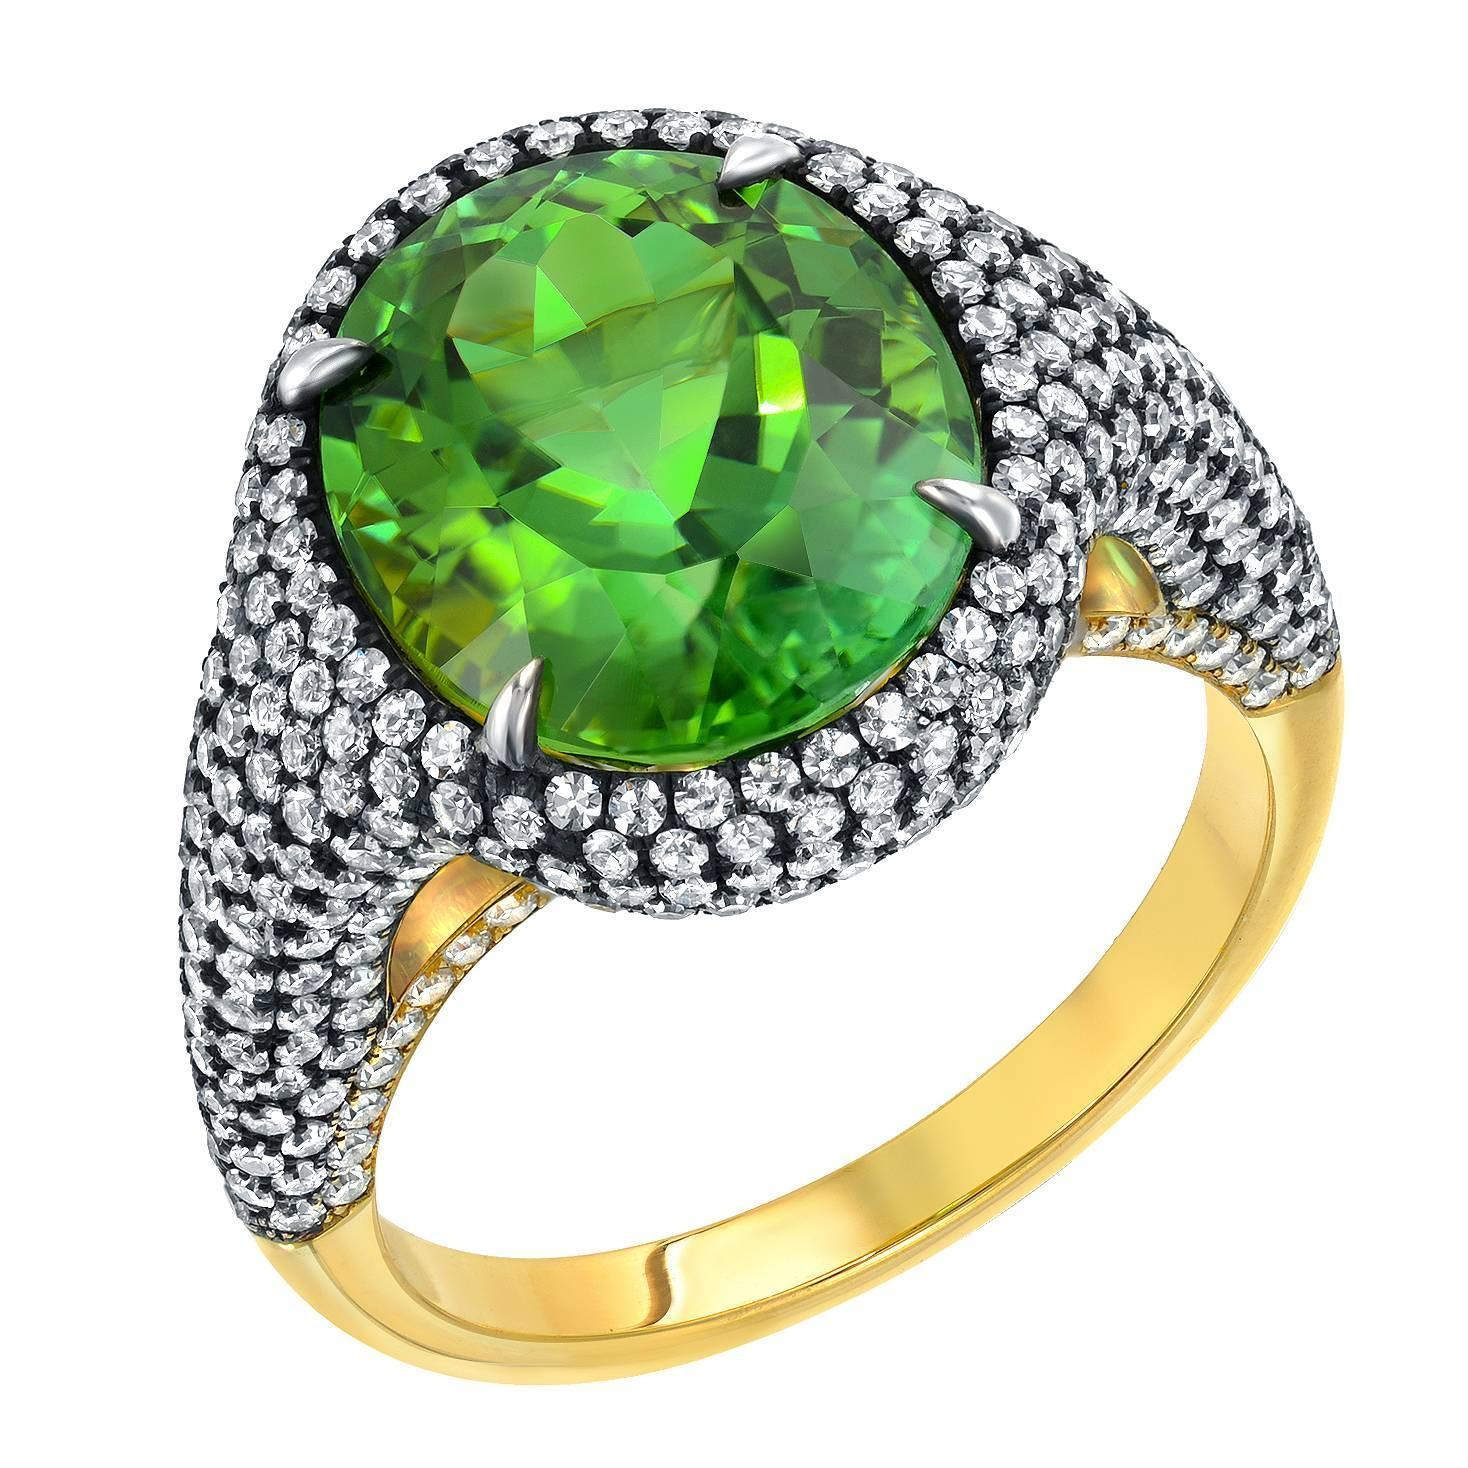 rings and products ring diamond antique cut rose engagement tourmaline green